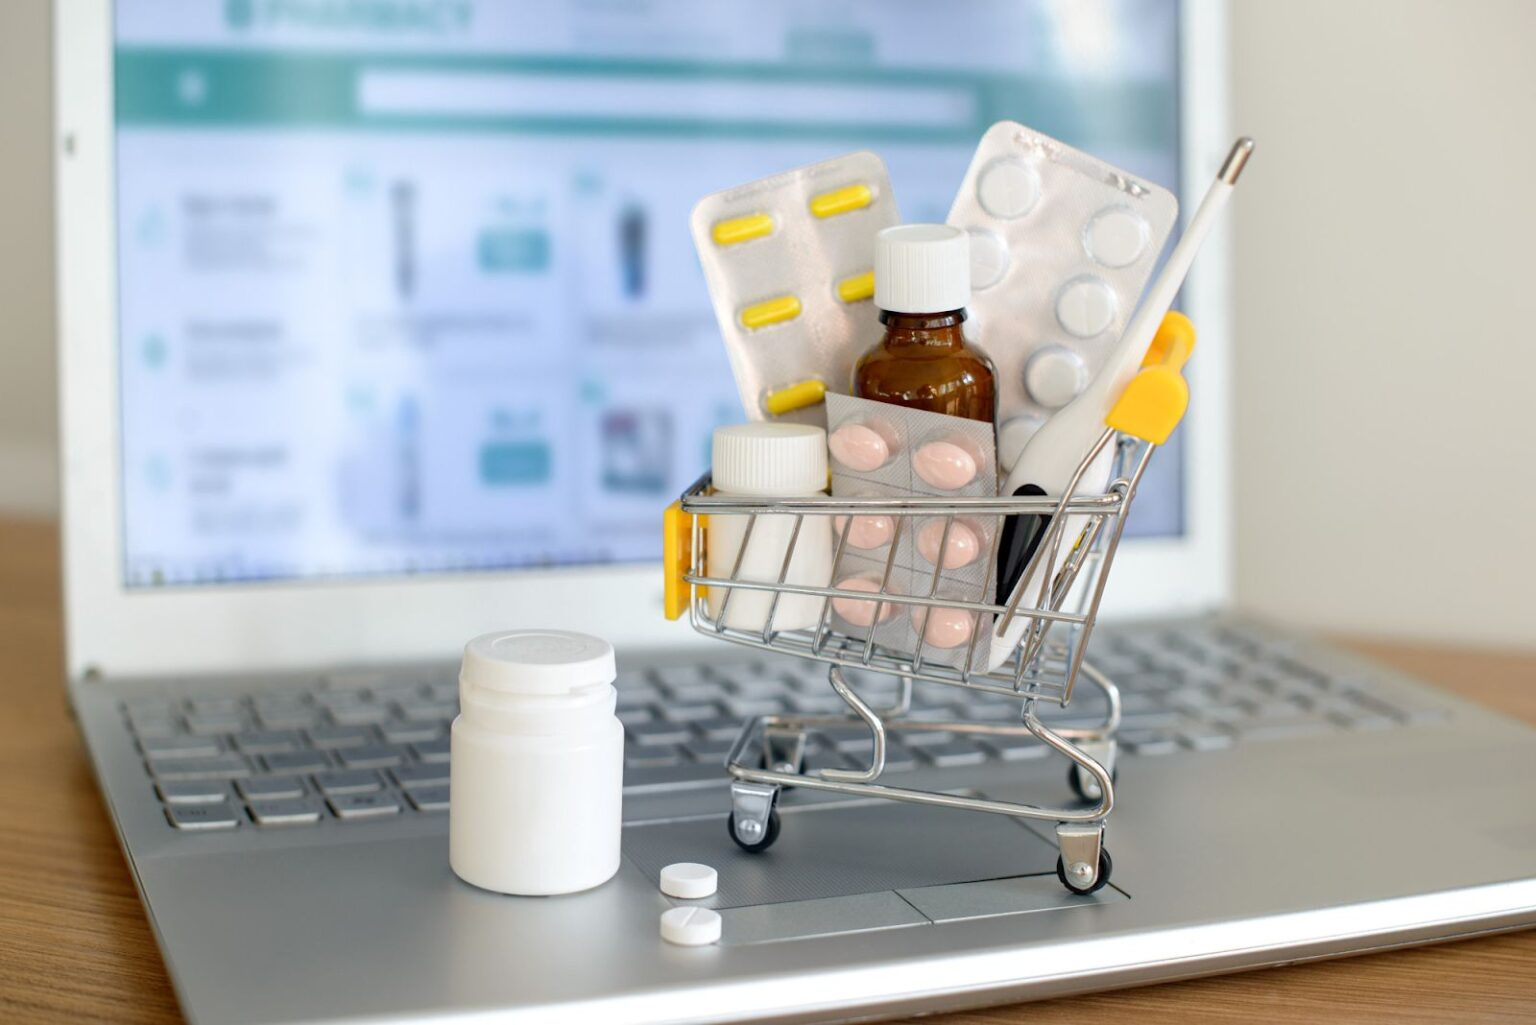 5 Ways to Know if Your Online Pharmacy is Safe and Legit